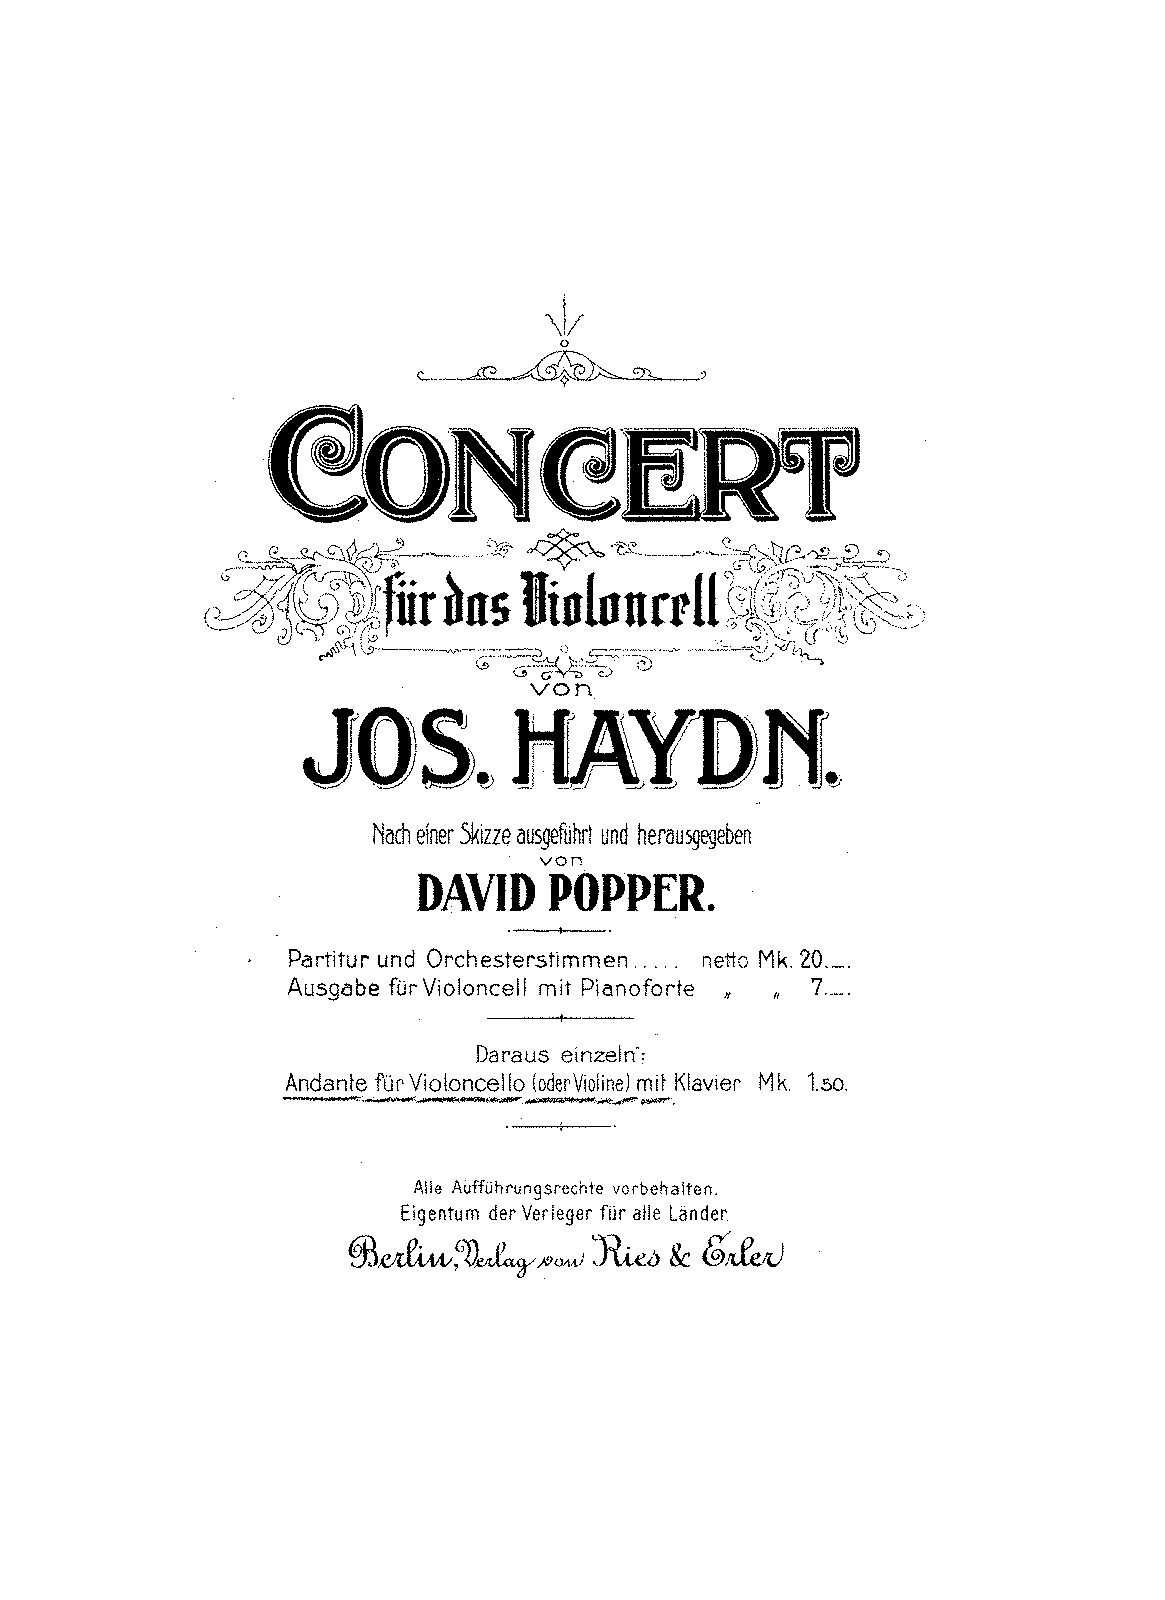 PMLP54099-Haydn-Popper - Andante from Concerto for Cello (or Violin) and piano score.pdf